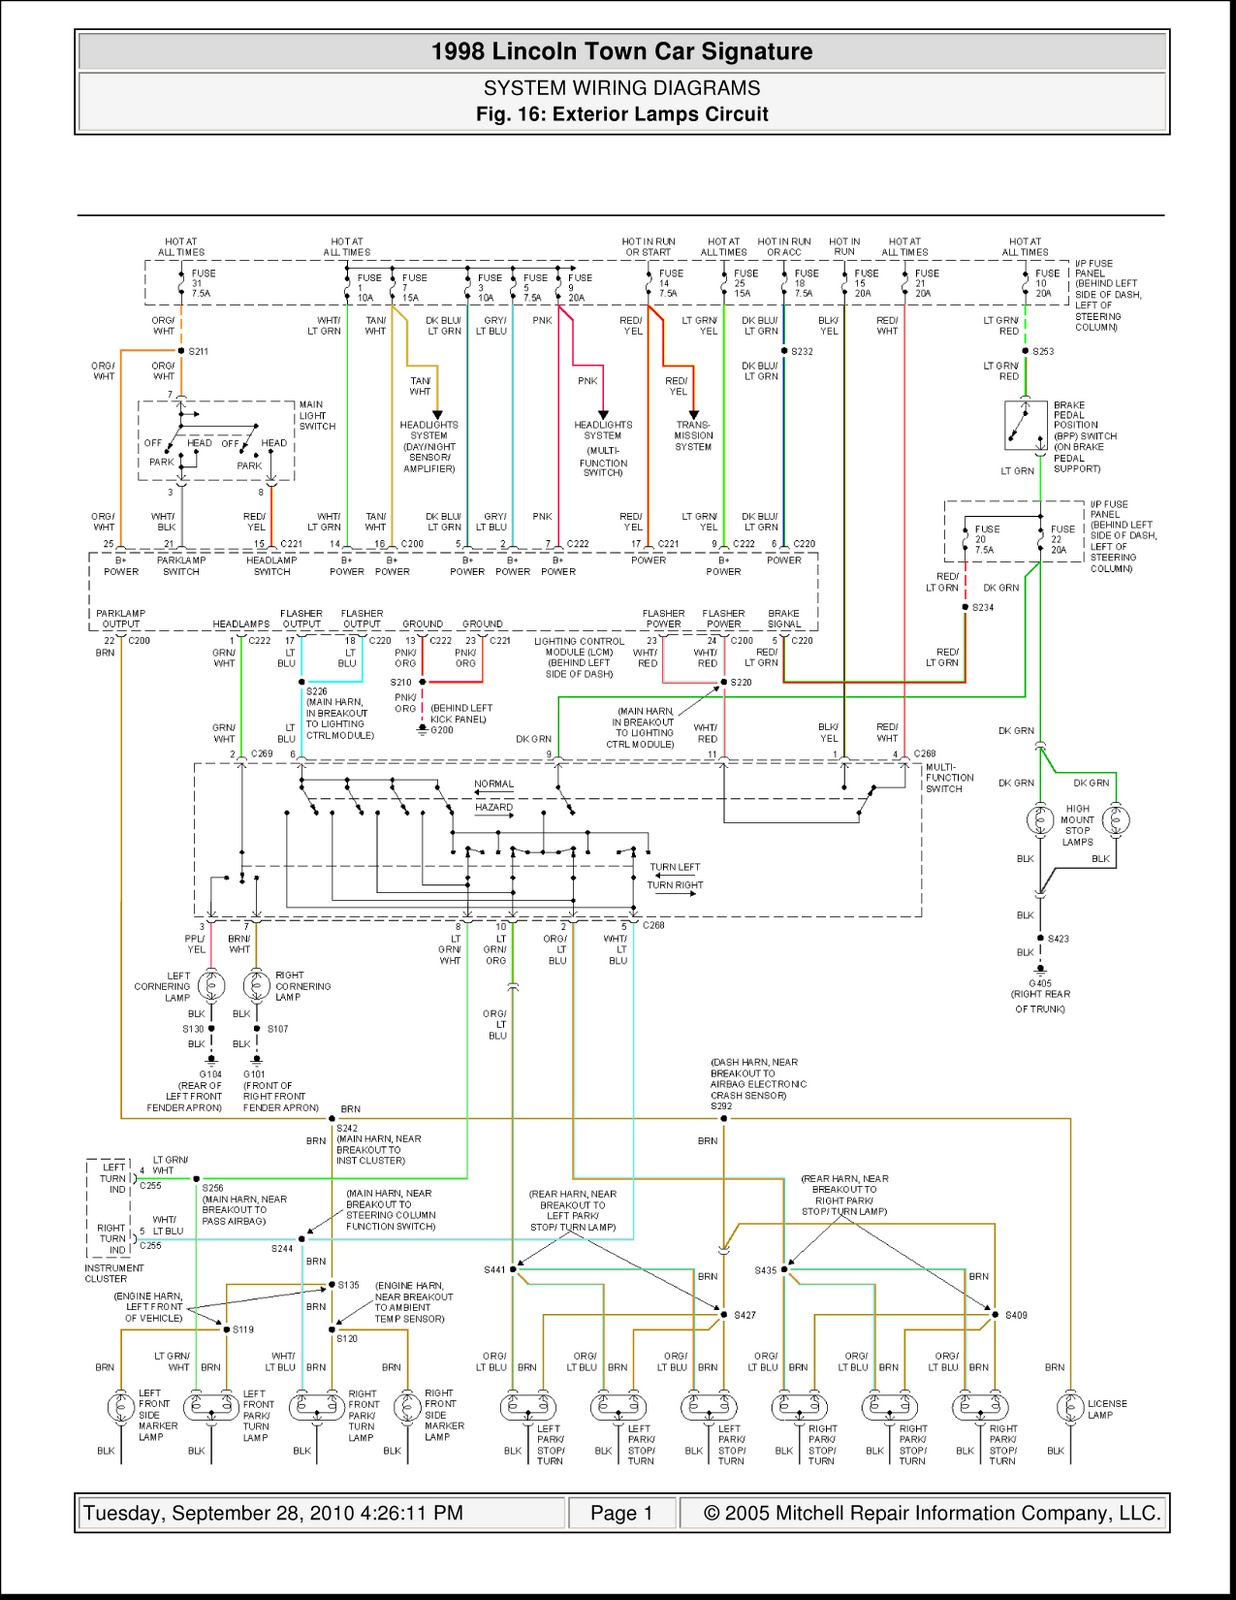 automotive wiring diagram jeep cherokee radio diagrams 1993 lincoln town car 2003